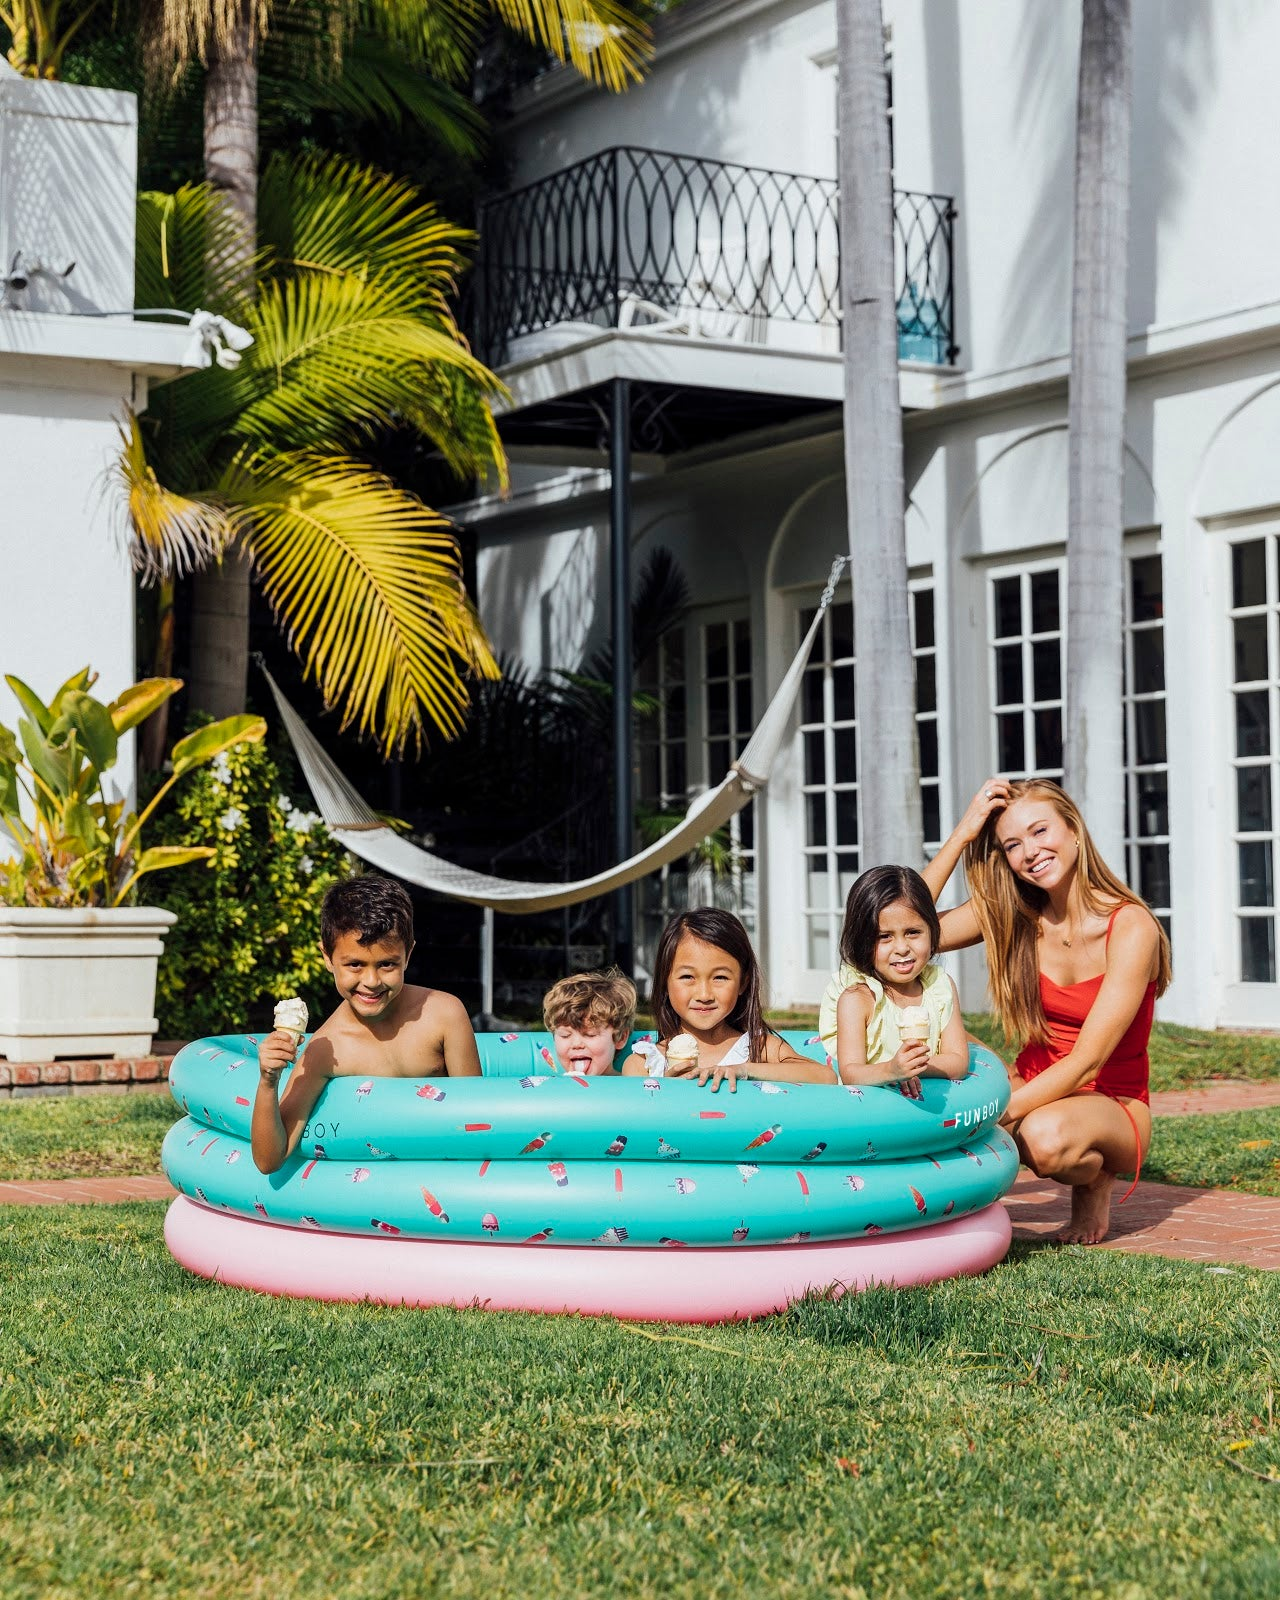 What's The Best Way To Clean An Inflatable Kiddie Pool